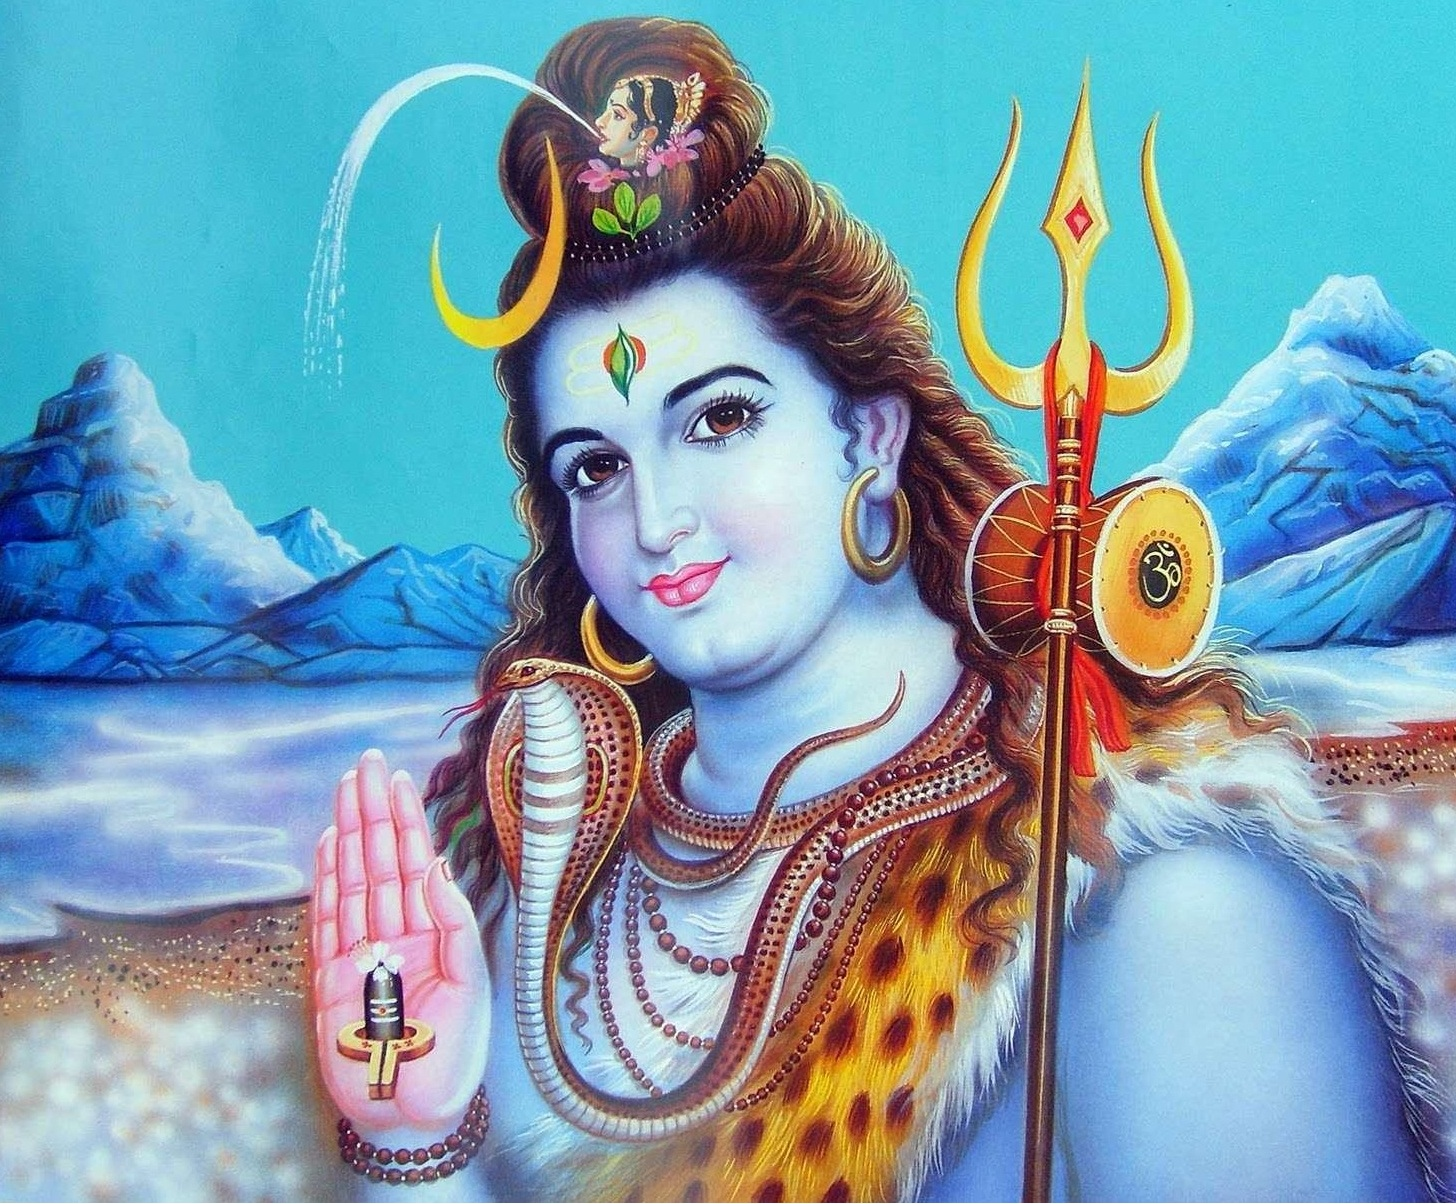 Shiv Shankar Hd Wallpaper 835 Lord Shiva Images Wallpapers Amp God Shiva Photos In